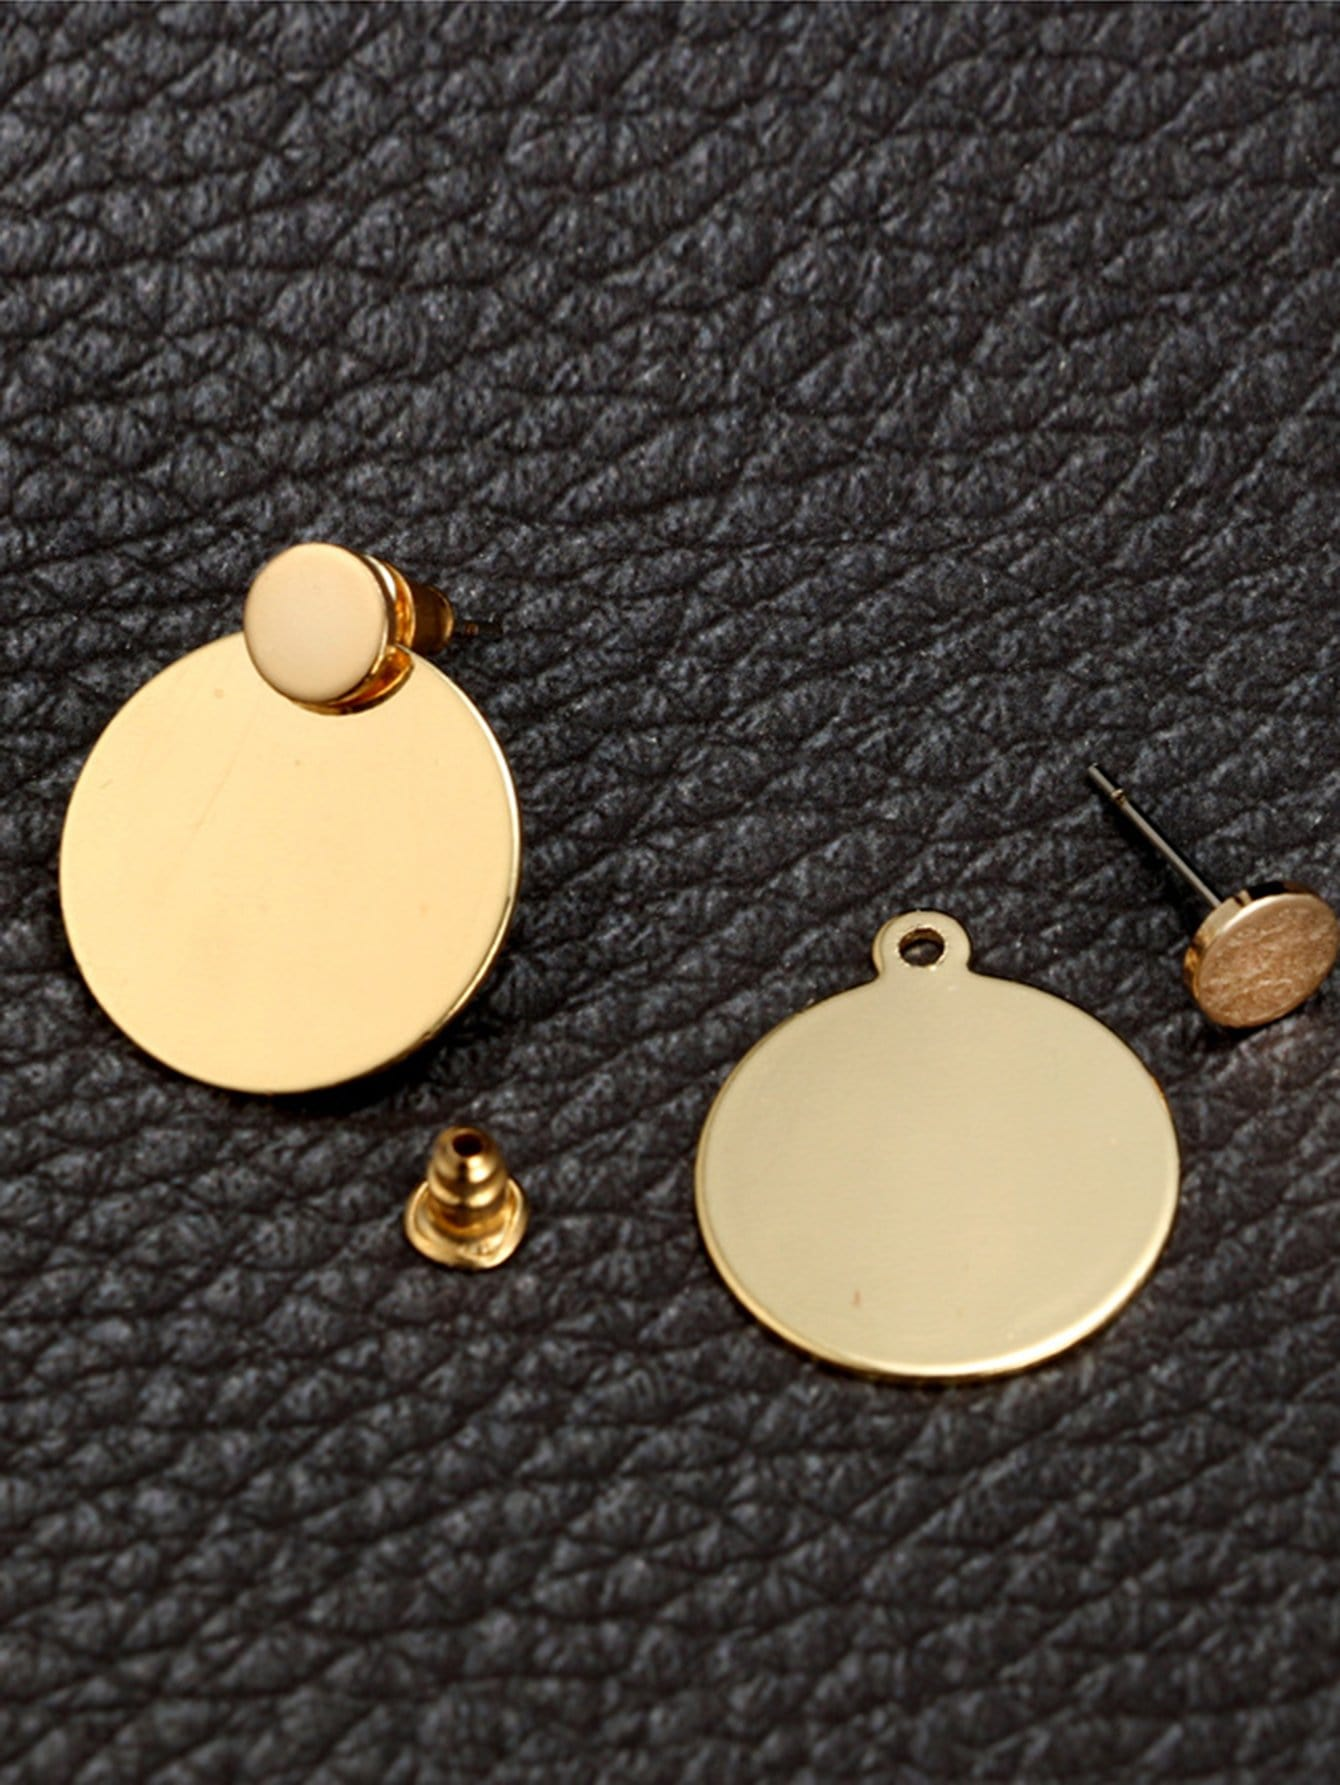 pdp dyrberg com johnlewis earrings flat lewis main gold rsp john disc stud kern at online buydyrberg